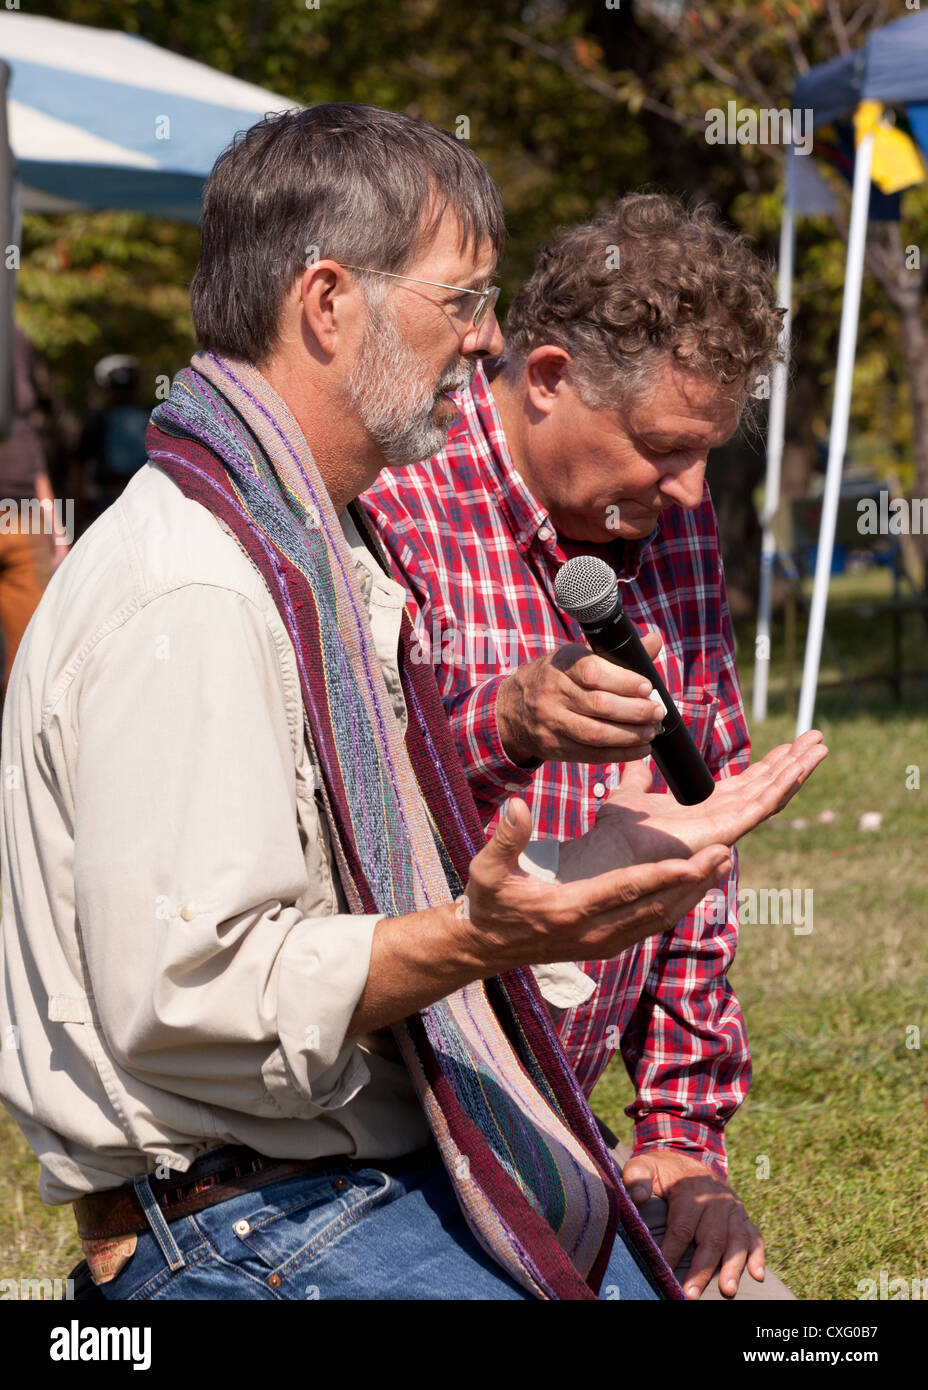 Man praying into a mic at an outdoor gathering - Stock Image